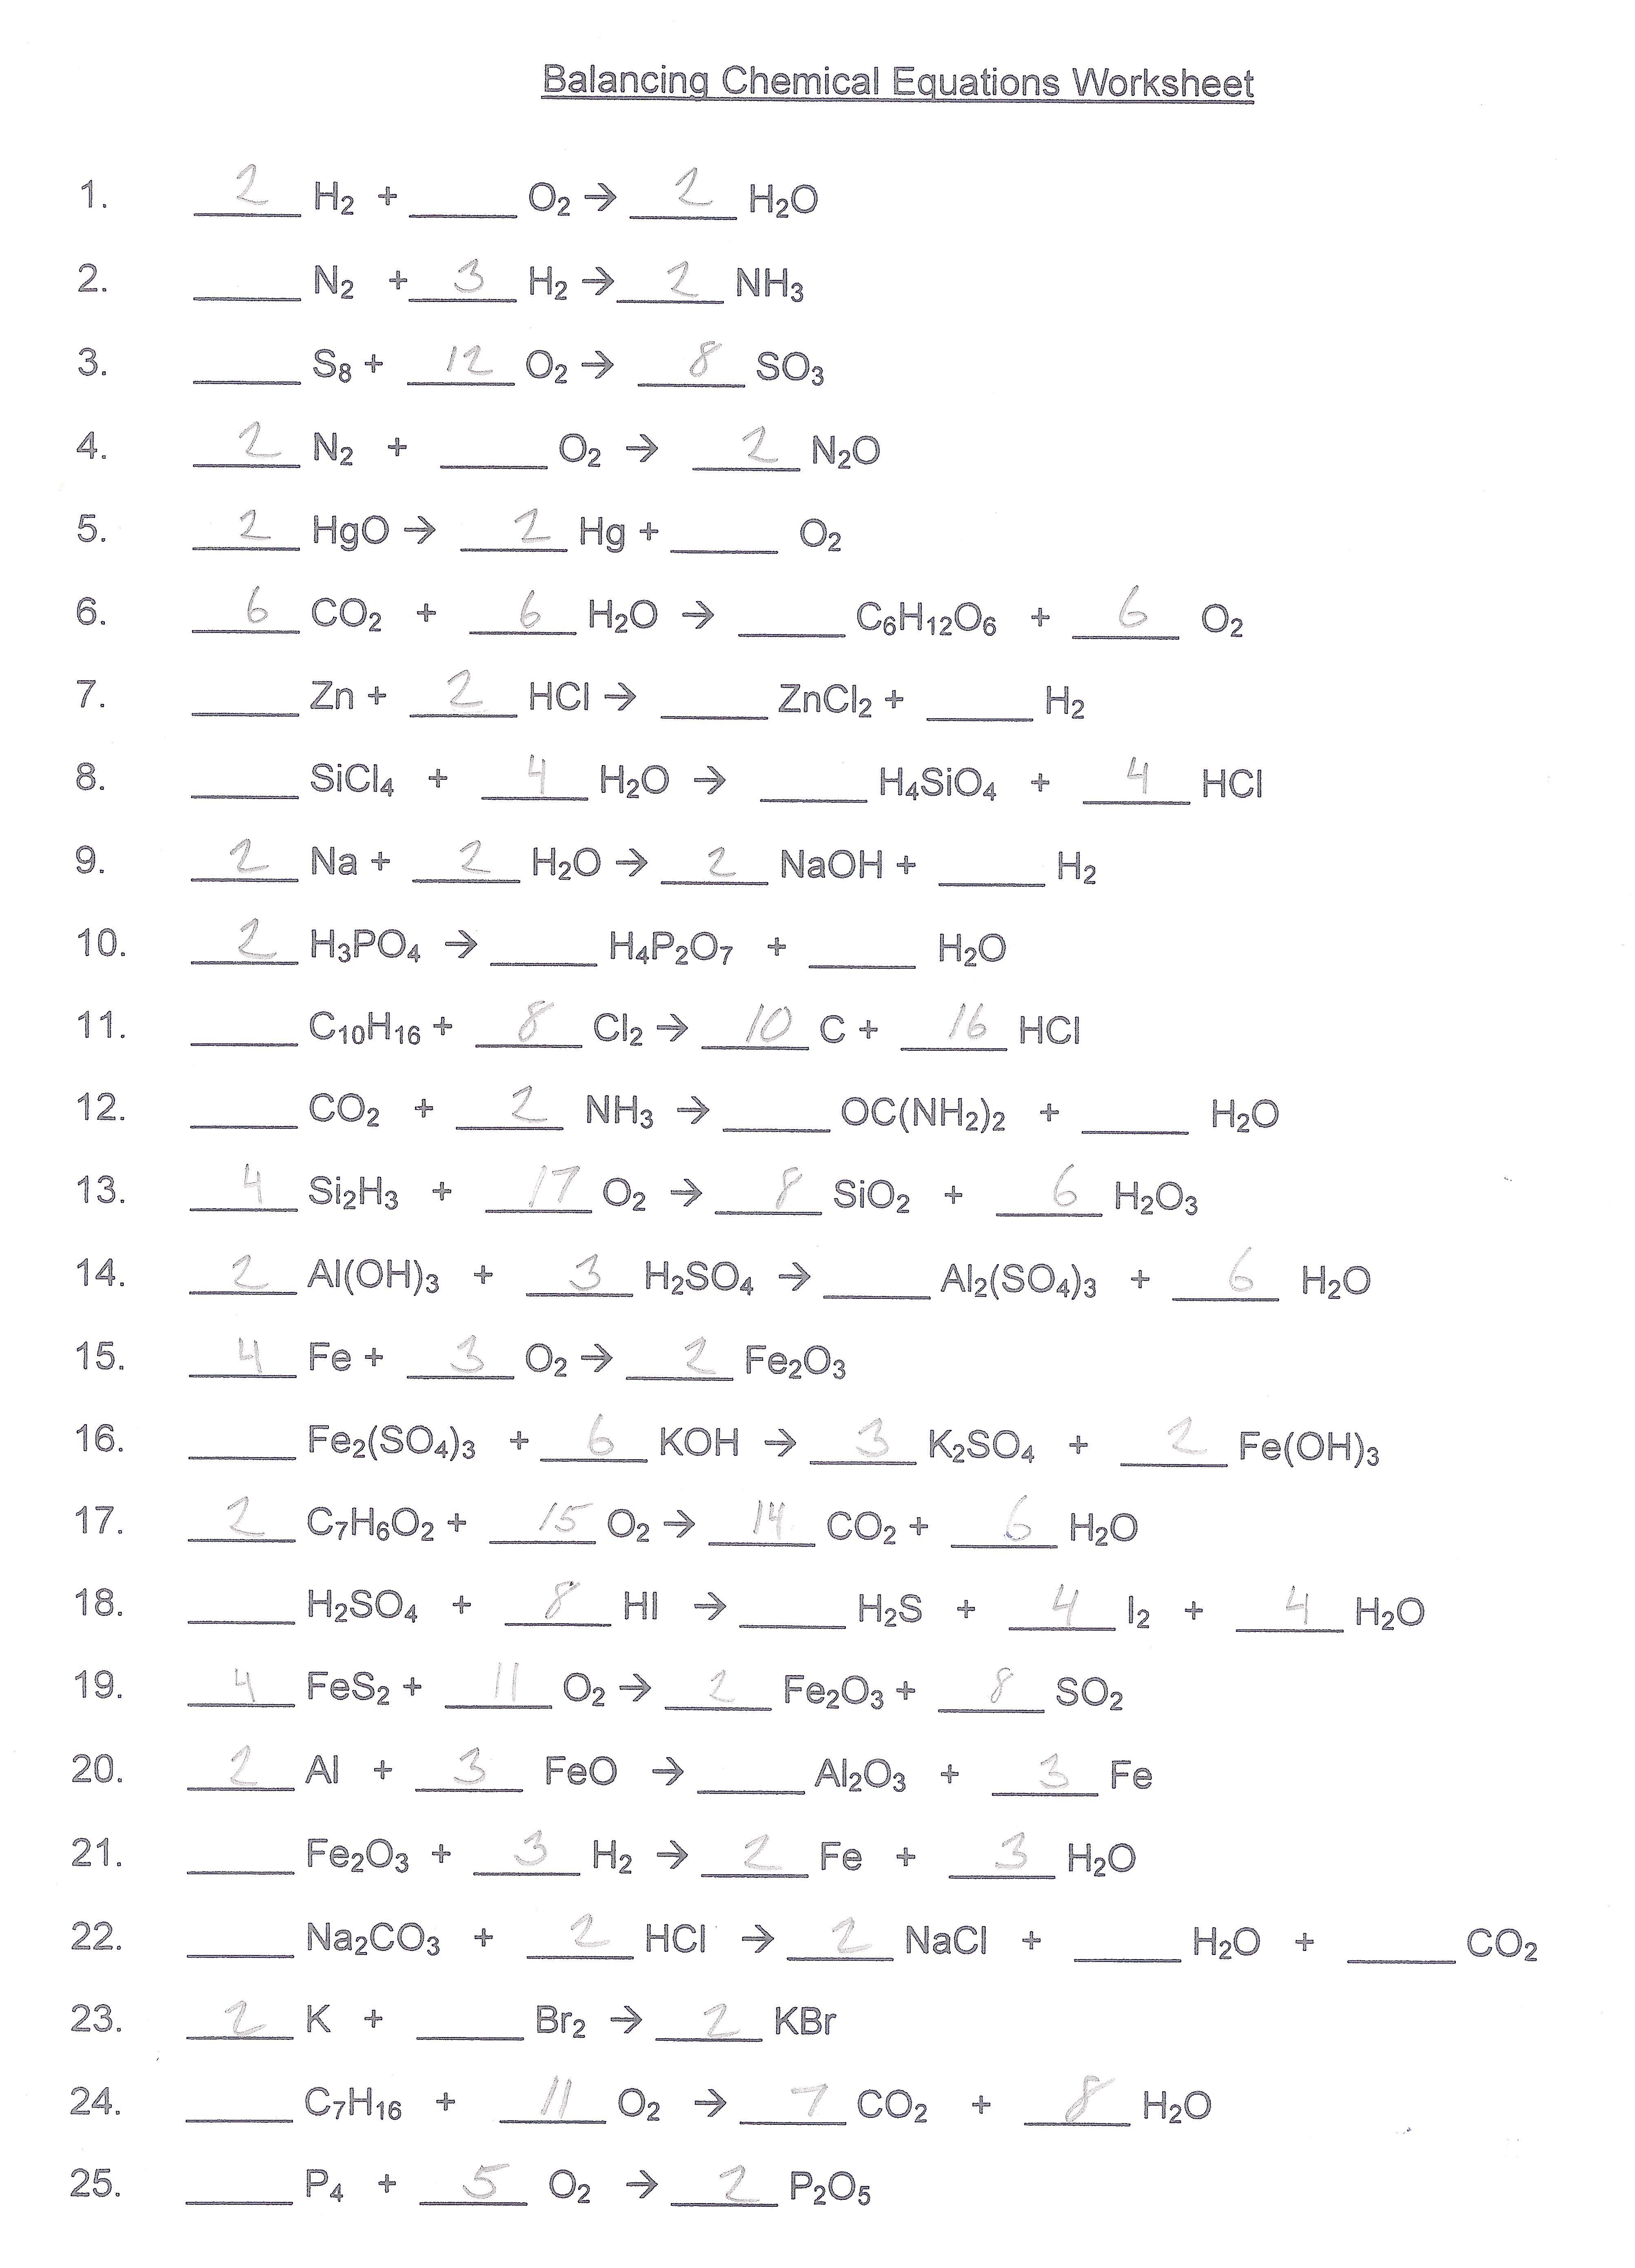 Worksheets Chemistry Worksheets With Answers balancing chemical equations worksheet answer key printable key